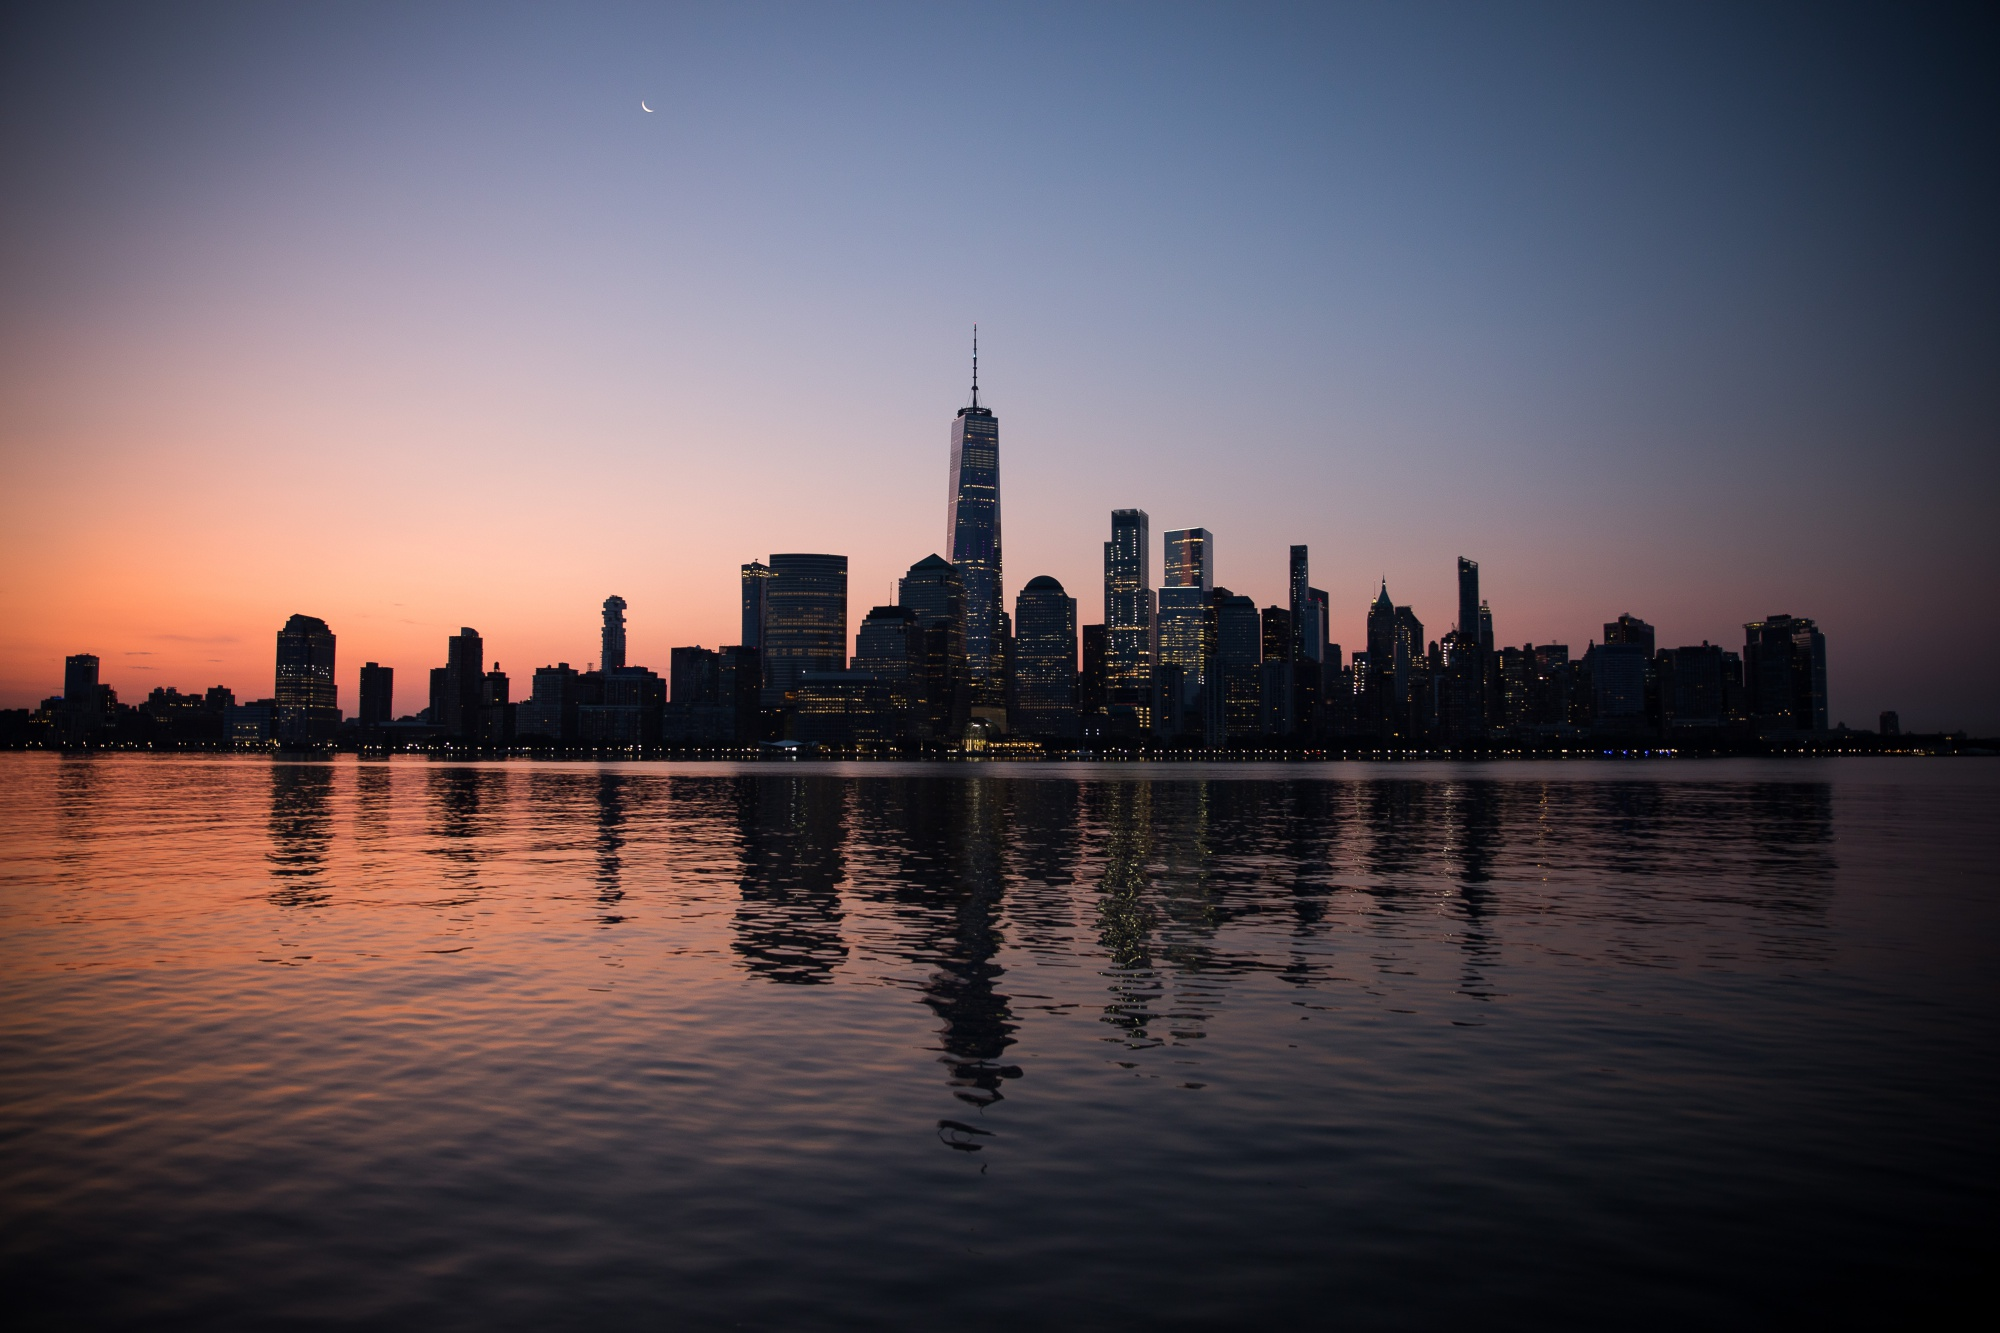 The lower Manhattan skyline is seen from Jersey City, New Jersey.